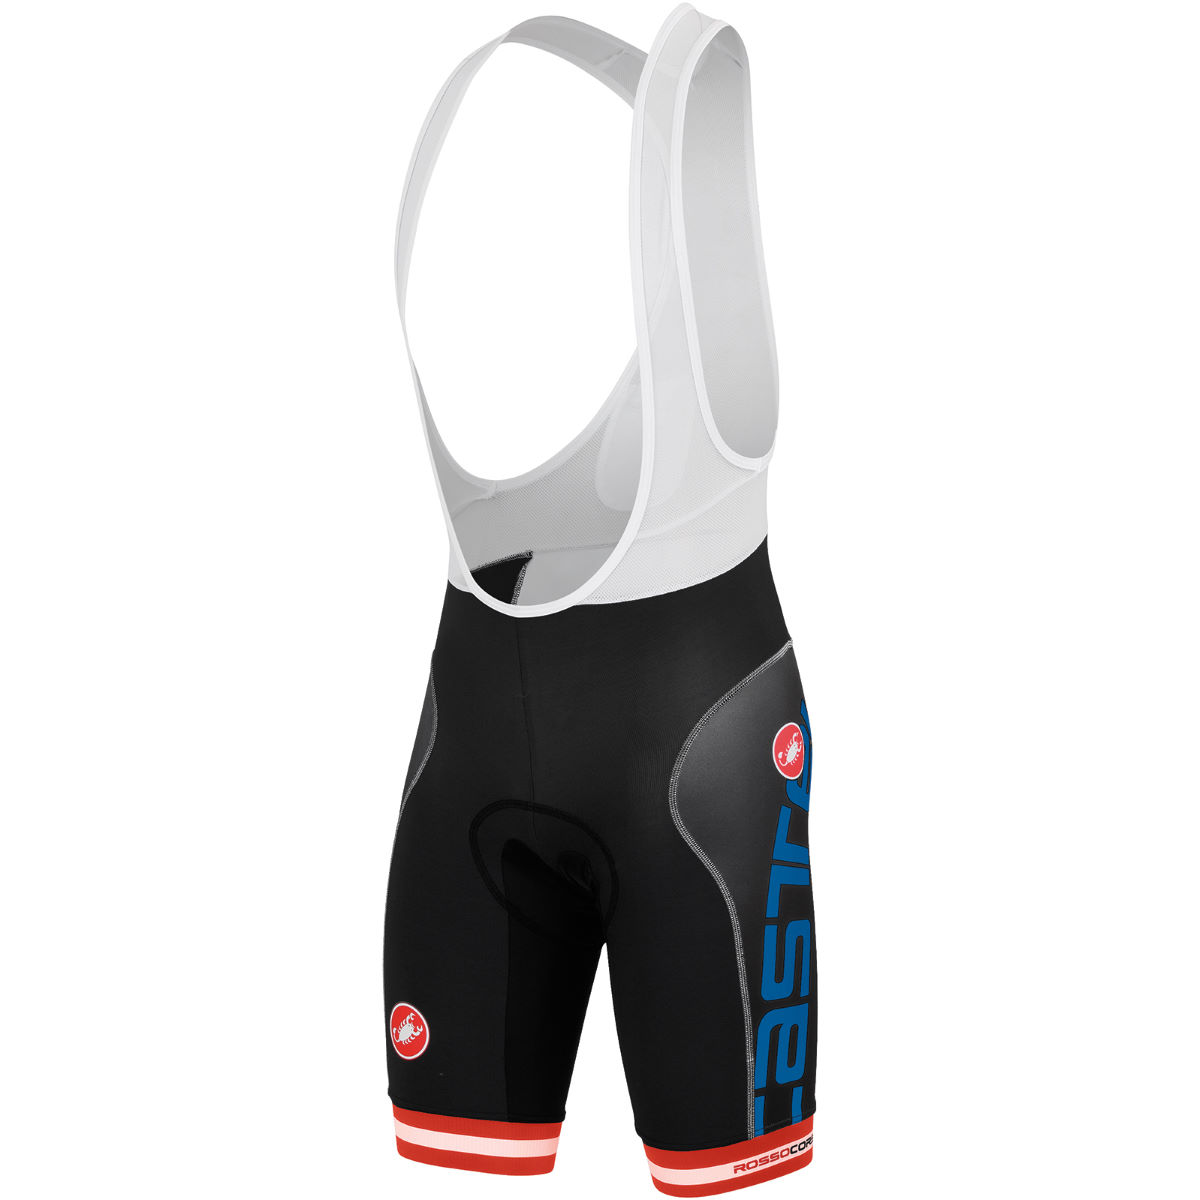 Castelli Free Aero Race Bib Shorts - Printed Version